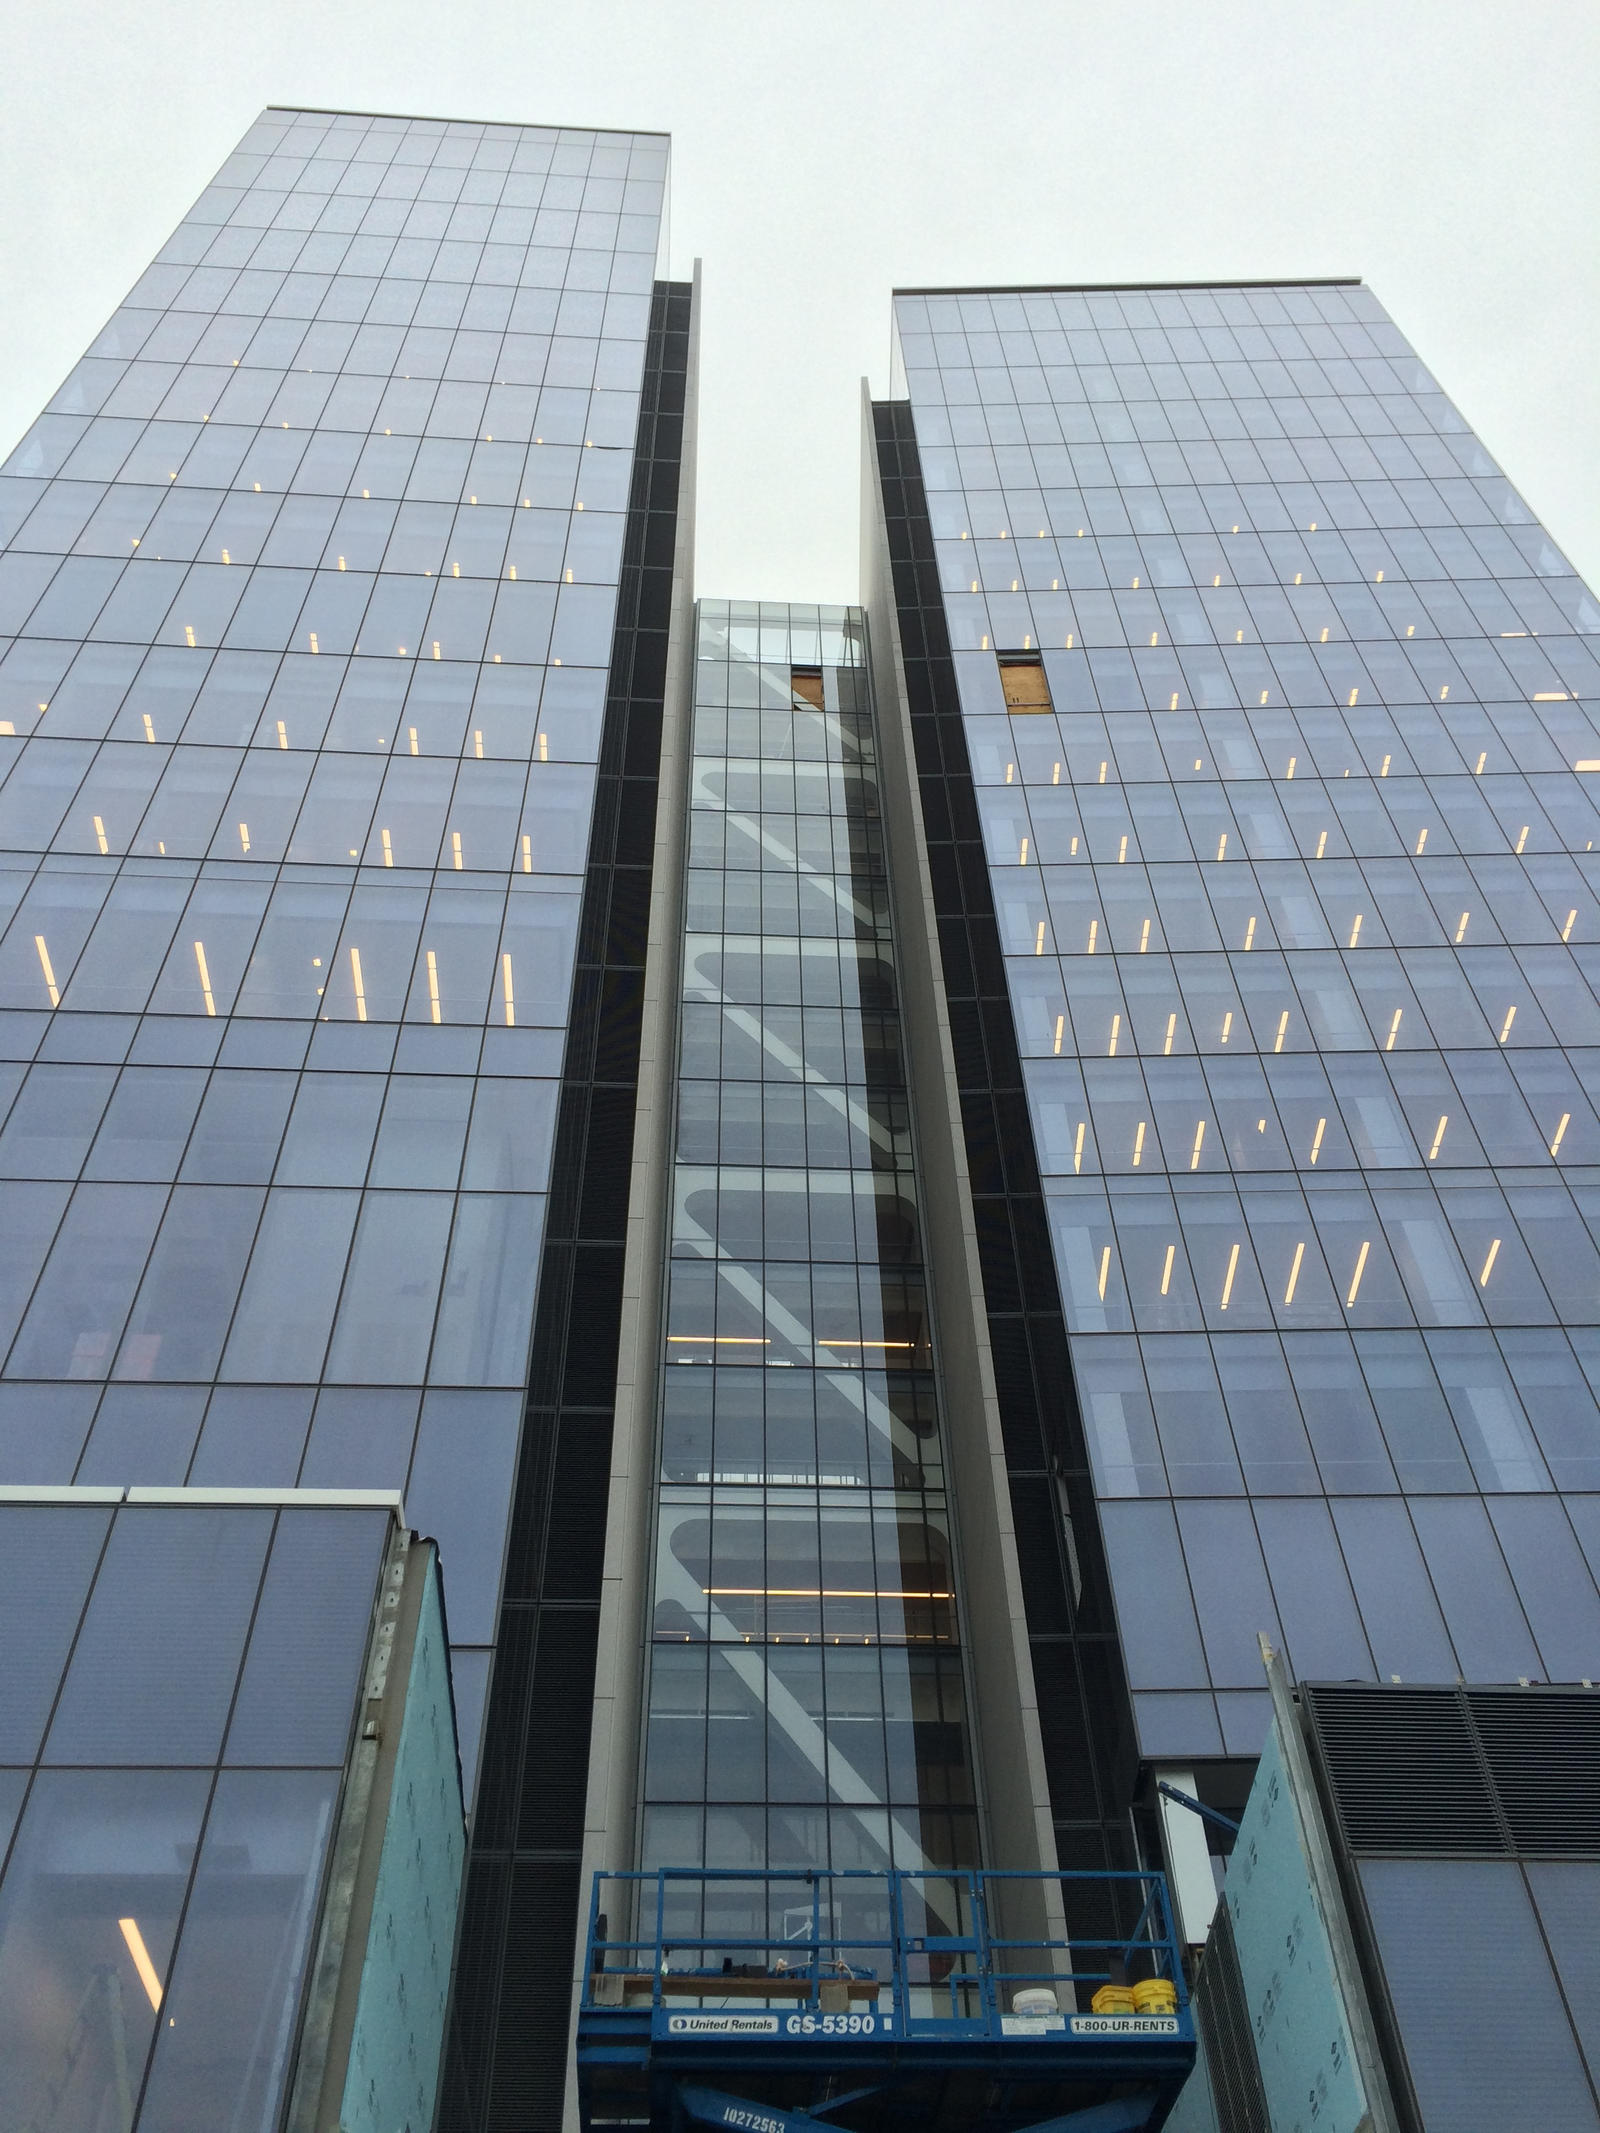 Looking Up-Prudential Tower Newark by towerpower123